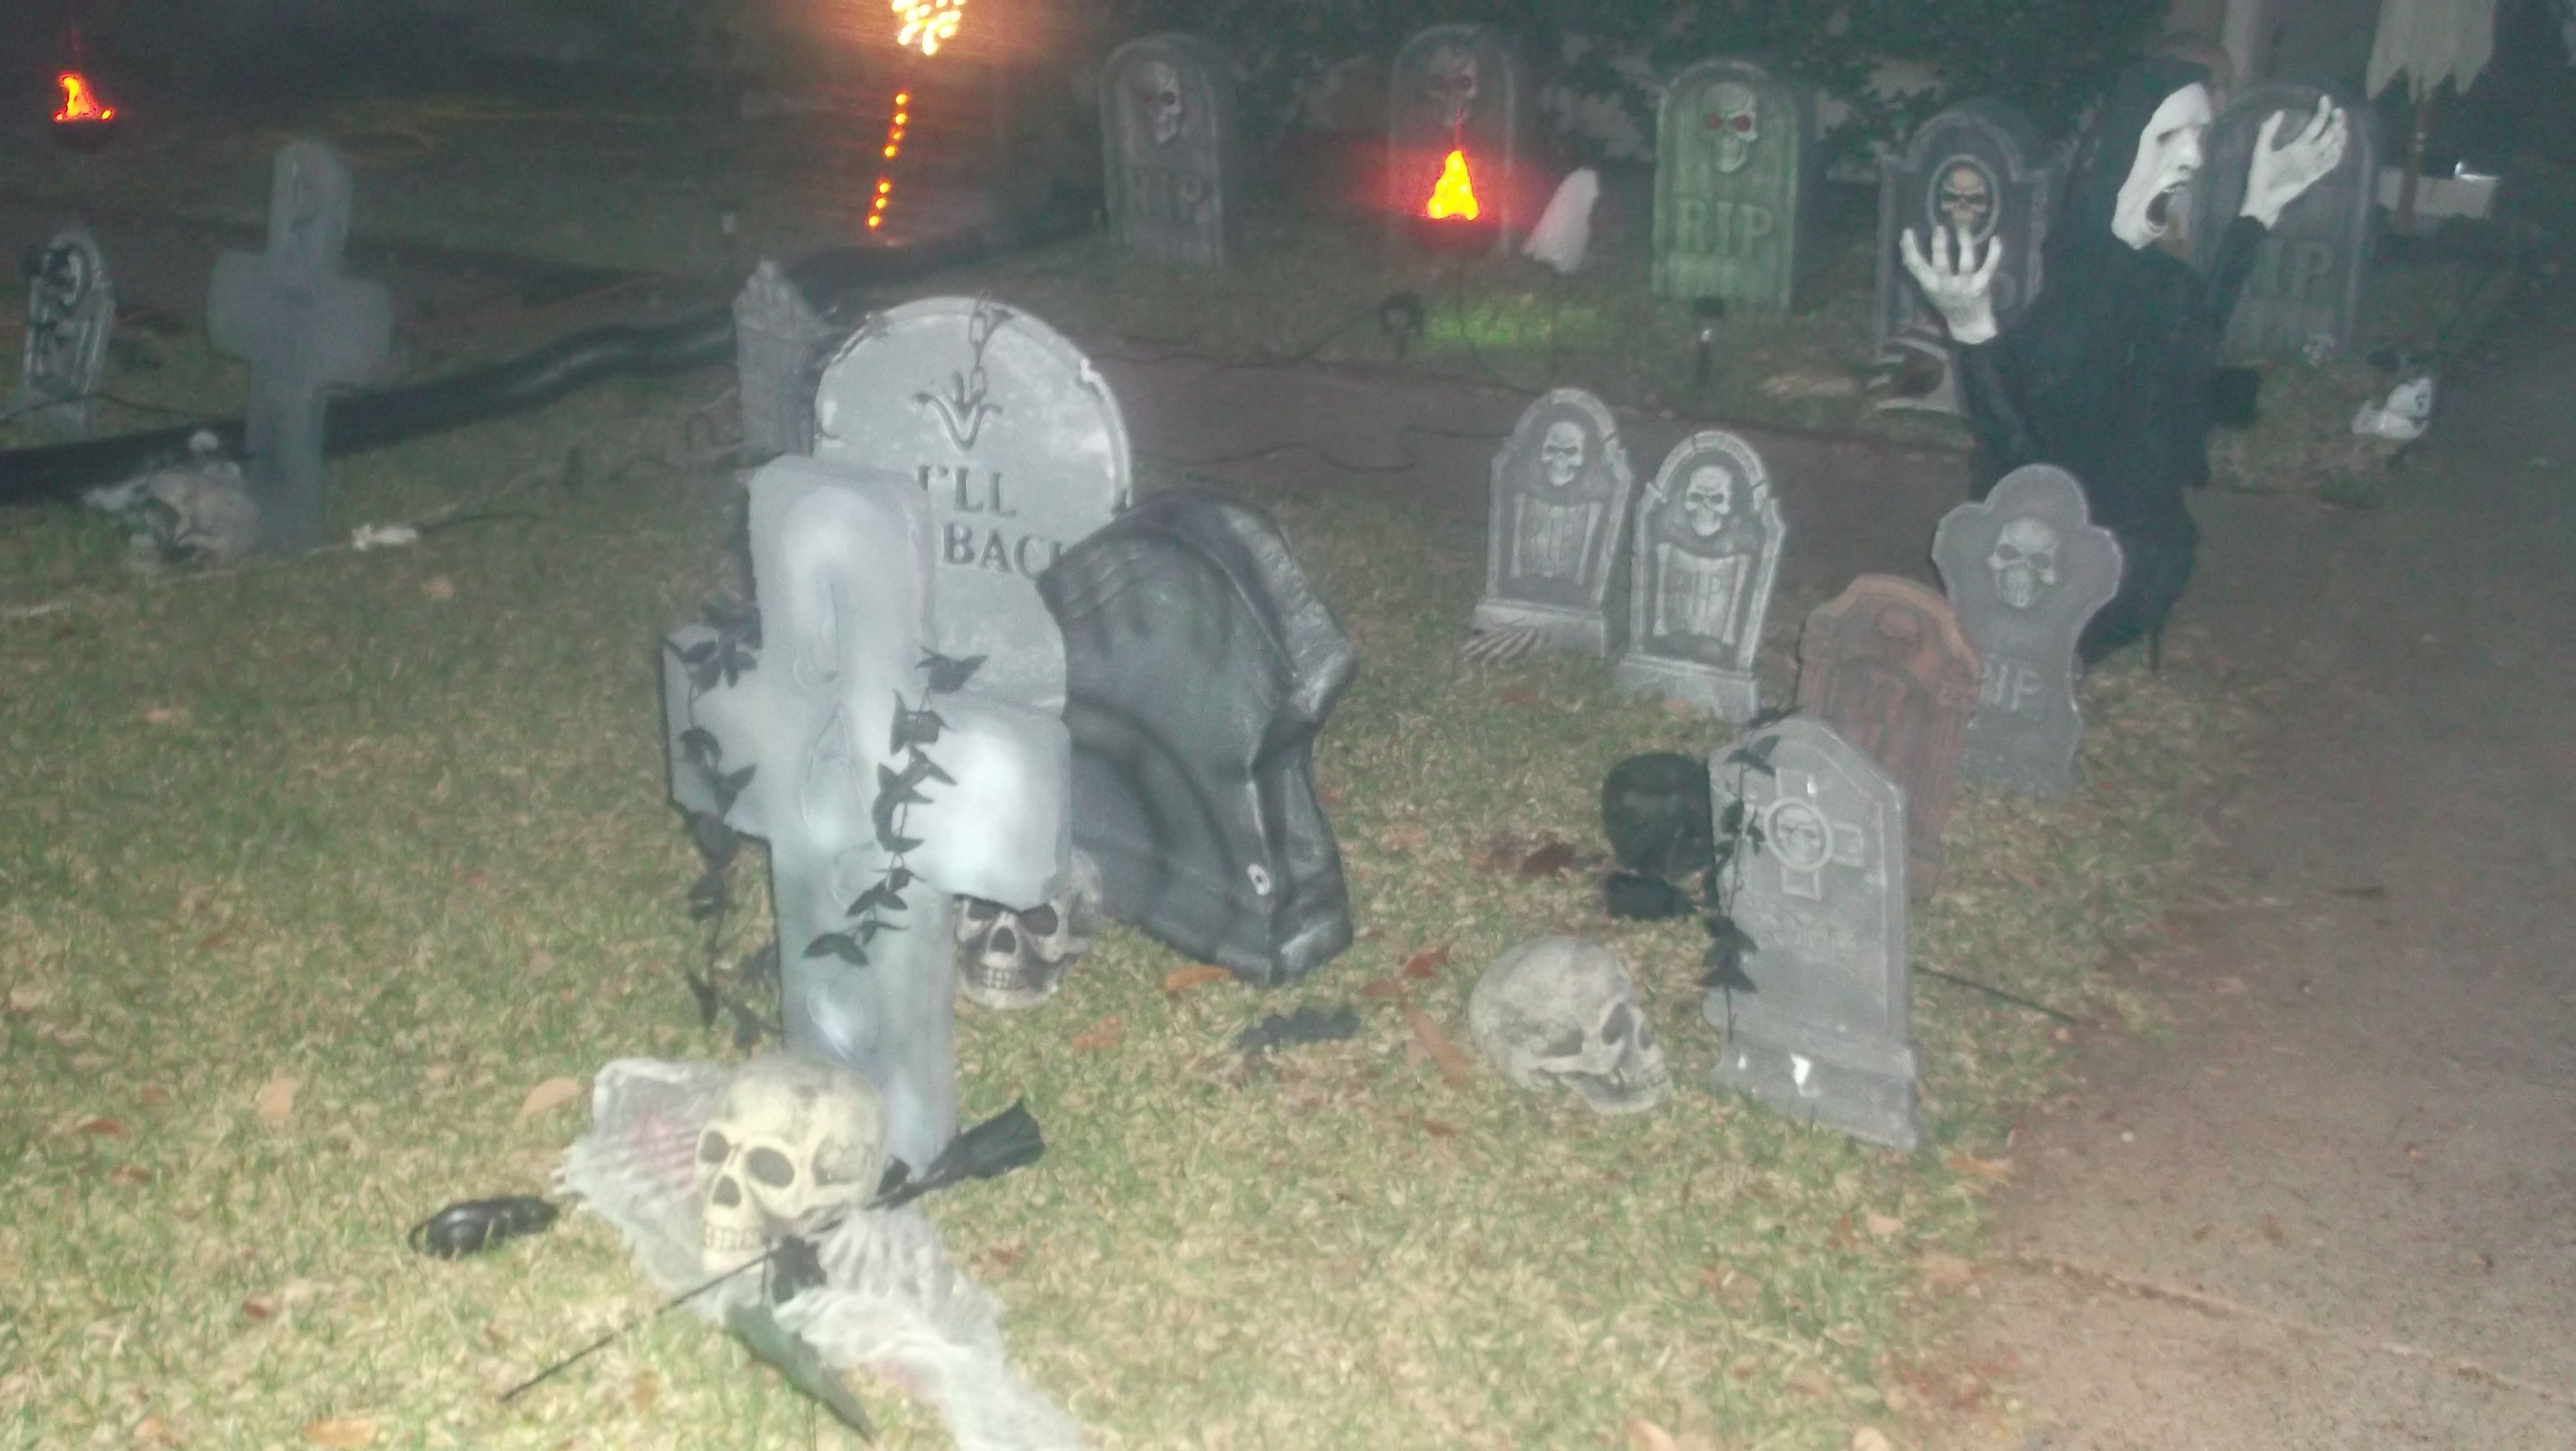 Our cemetery filled with lots of skulls, bones and parts from our local Spirit Halloween store, makes for an awesome cemetery!